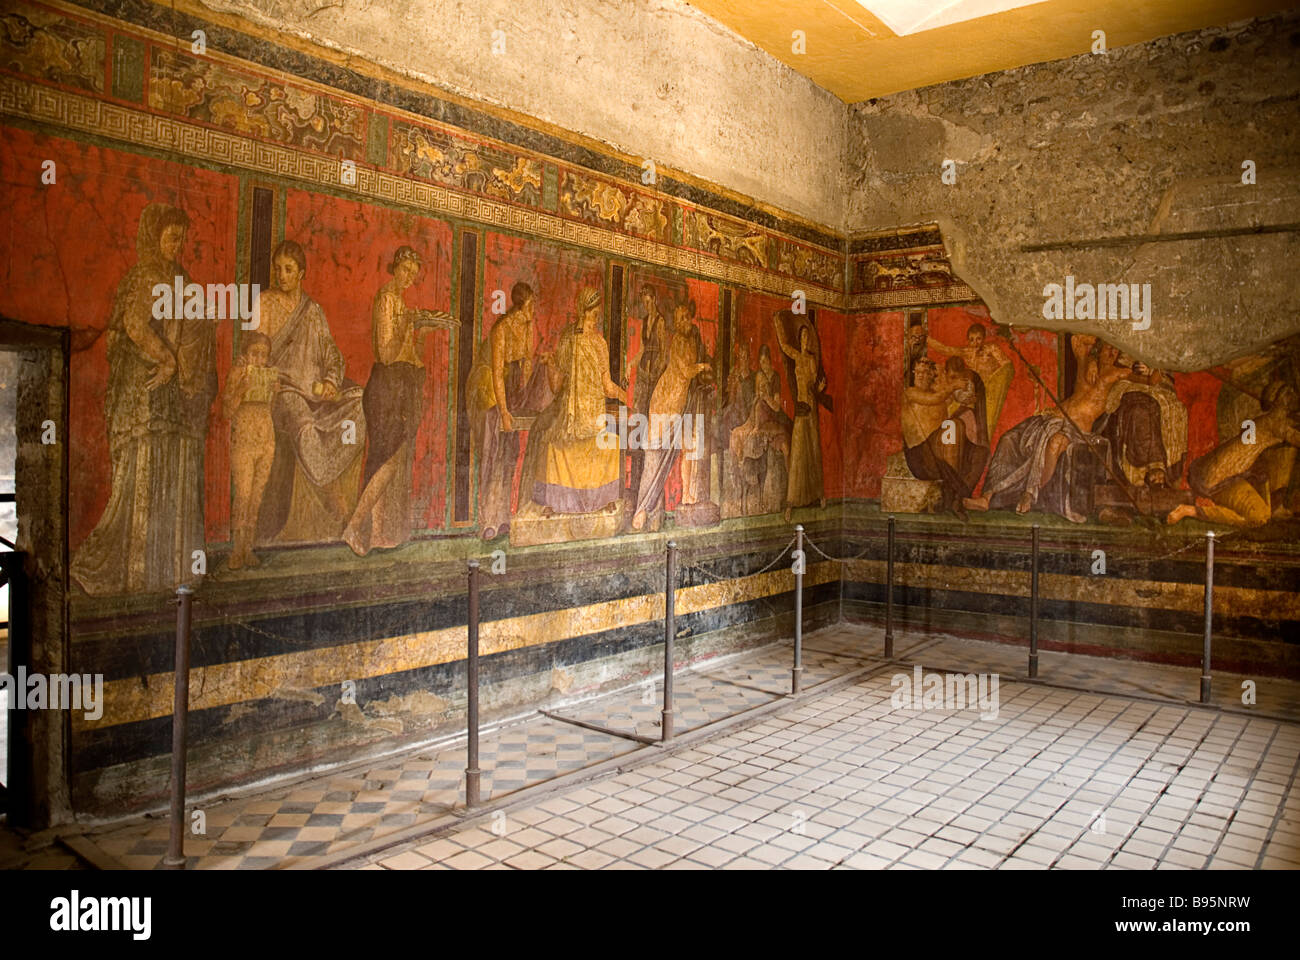 Italy, Campania, Napoli, Pompeii, well preserved frescoes in the Villa Of Mysteries. - Stock Image